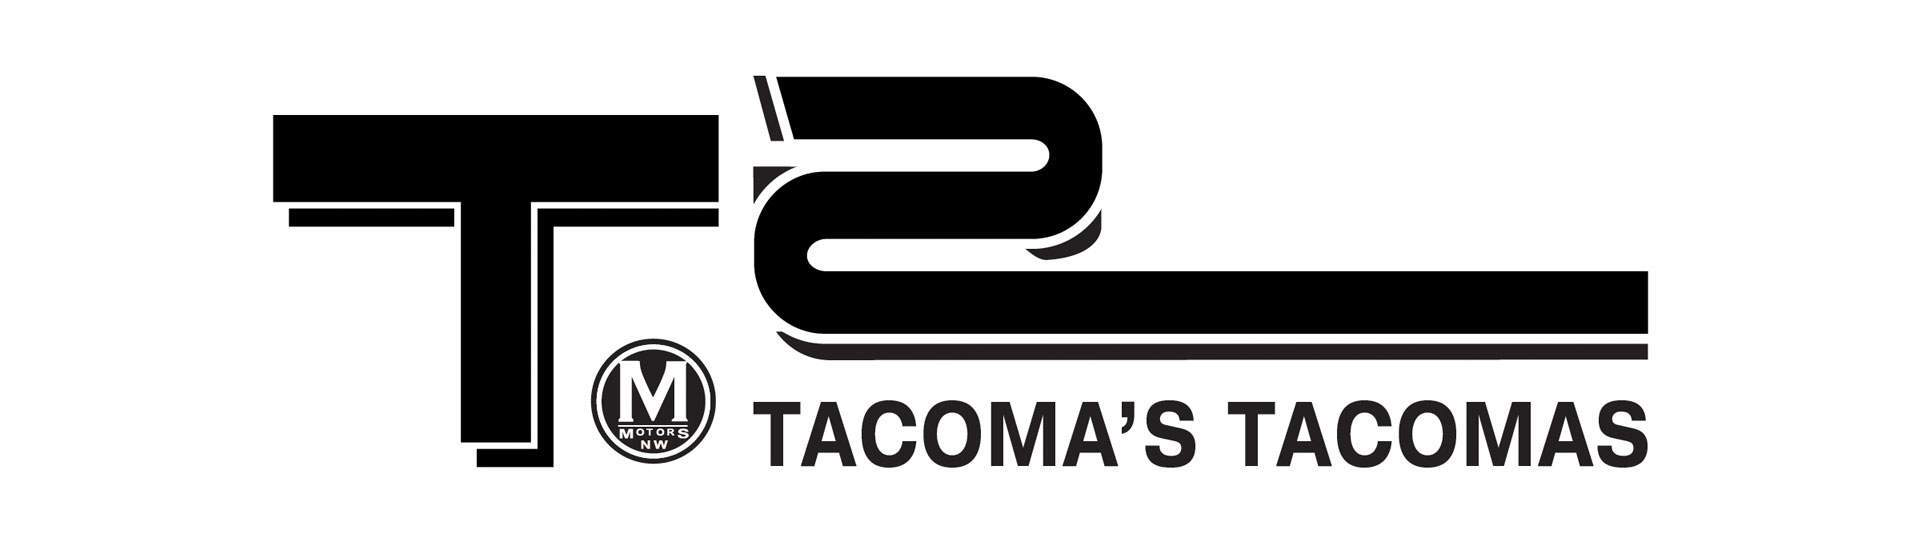 Tacoma's Tacomas at Motors Northwest